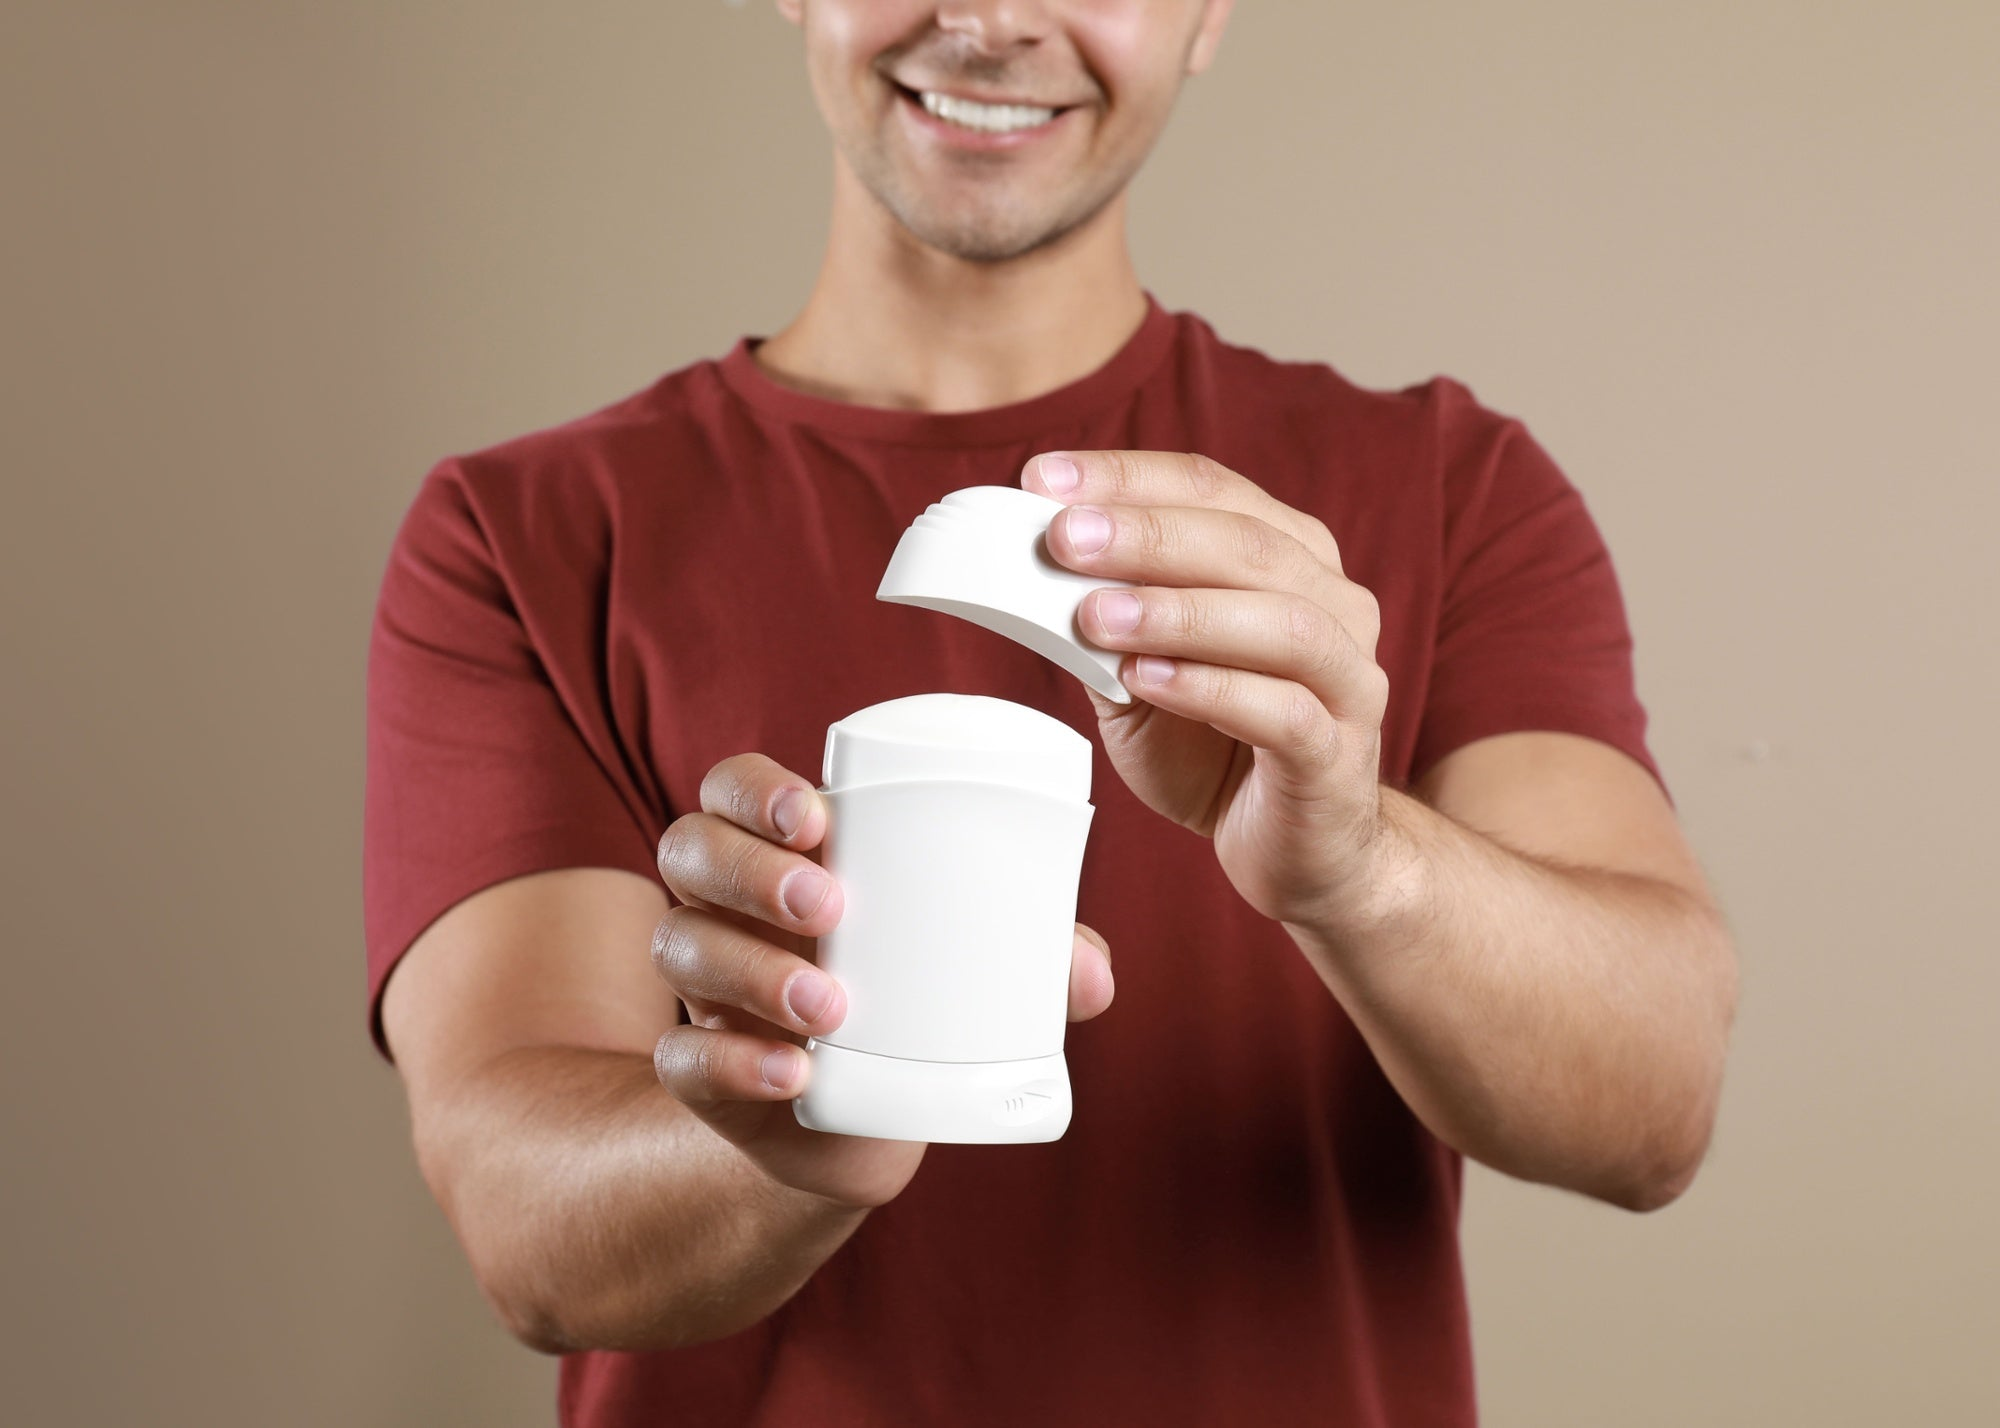 Deodorant vs. Antiperspirant: What Should You Choose?